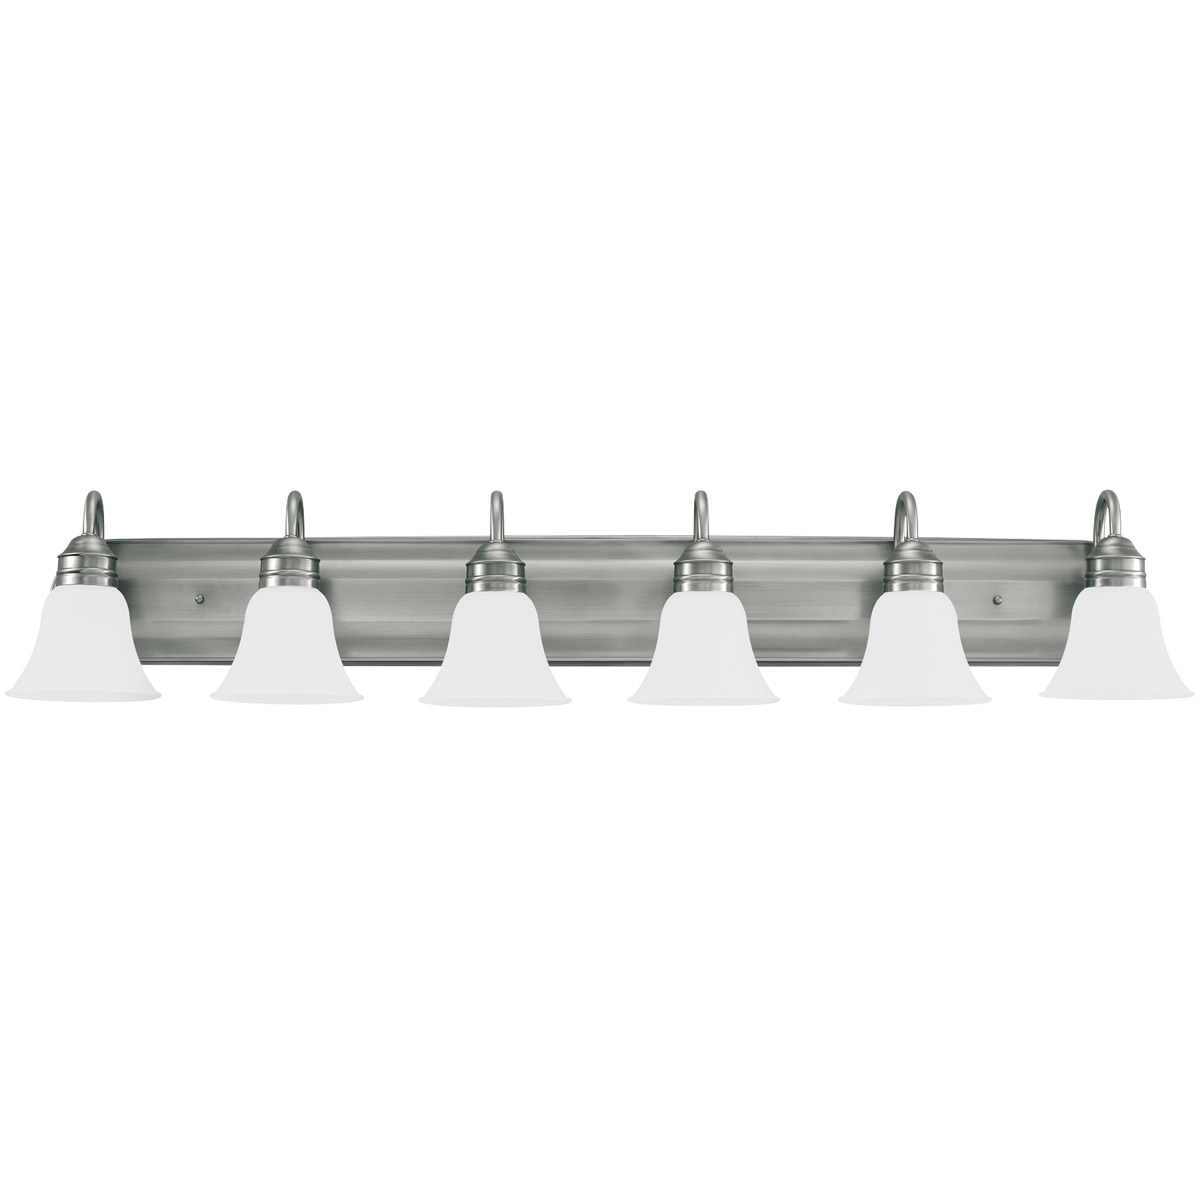 Sea Gull Lighting Gladstone 6 Light Bath Vanity in Antique Brushed Nickel 44855-965 photo